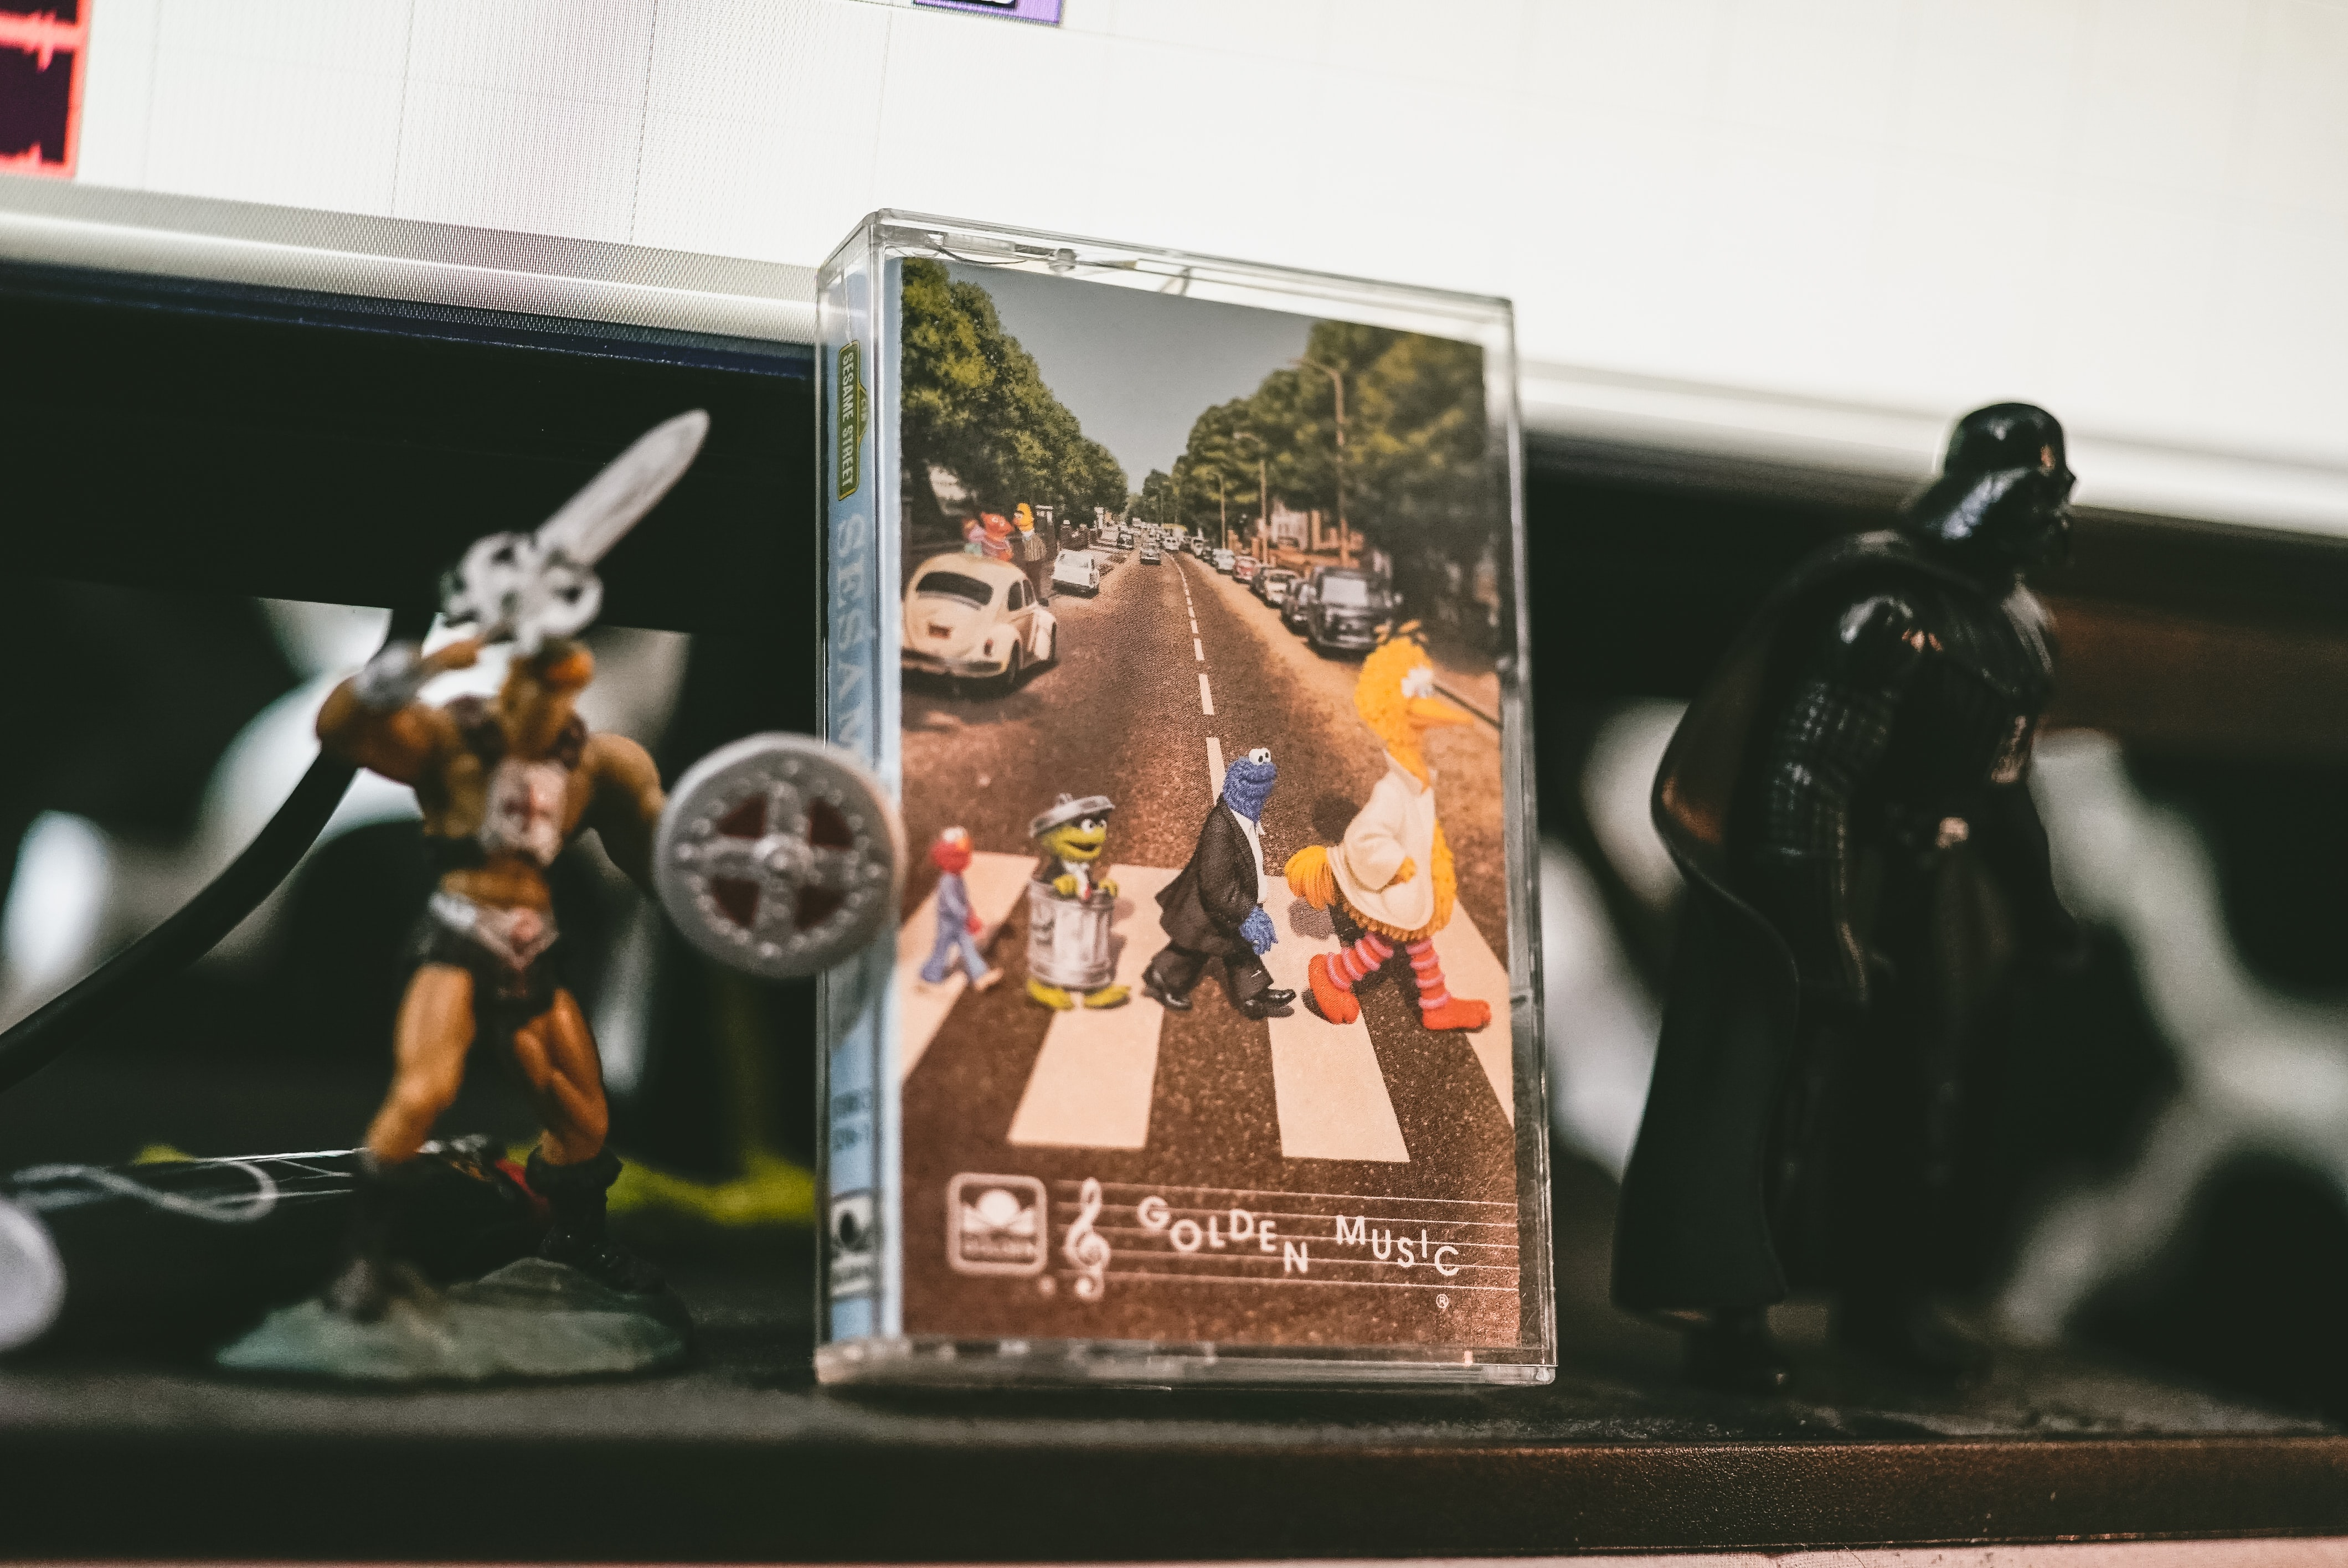 two He-Man and Darth Vader figurines on table